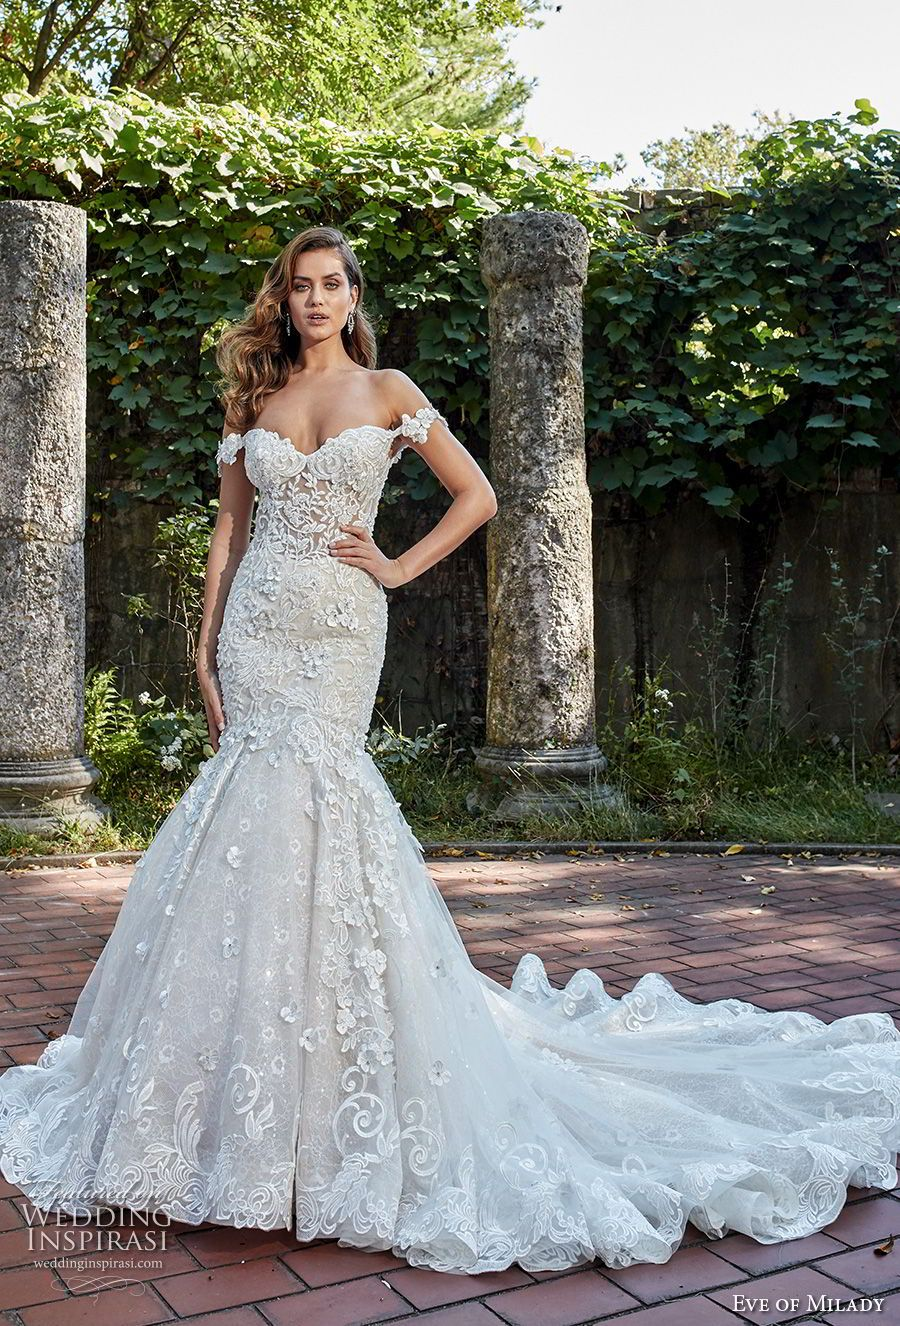 Eve of milady couture spring wedding dresses mermaid wedding